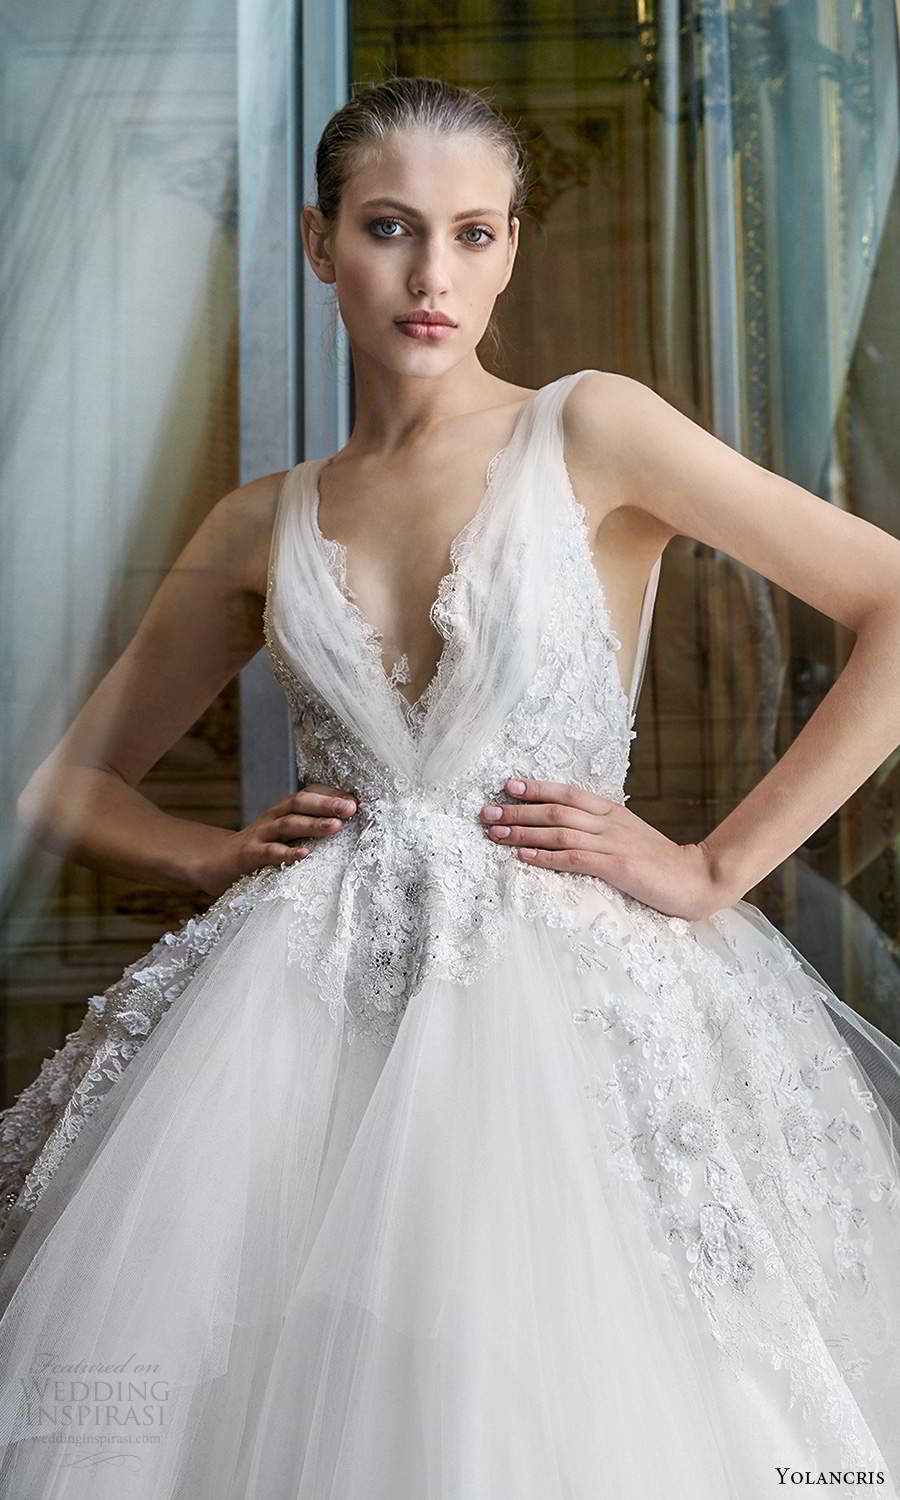 yolancris 2020 bridal couture sleeveless straps v neckline fully embellished a line ball gown wedding dress cathedral train (13) zv